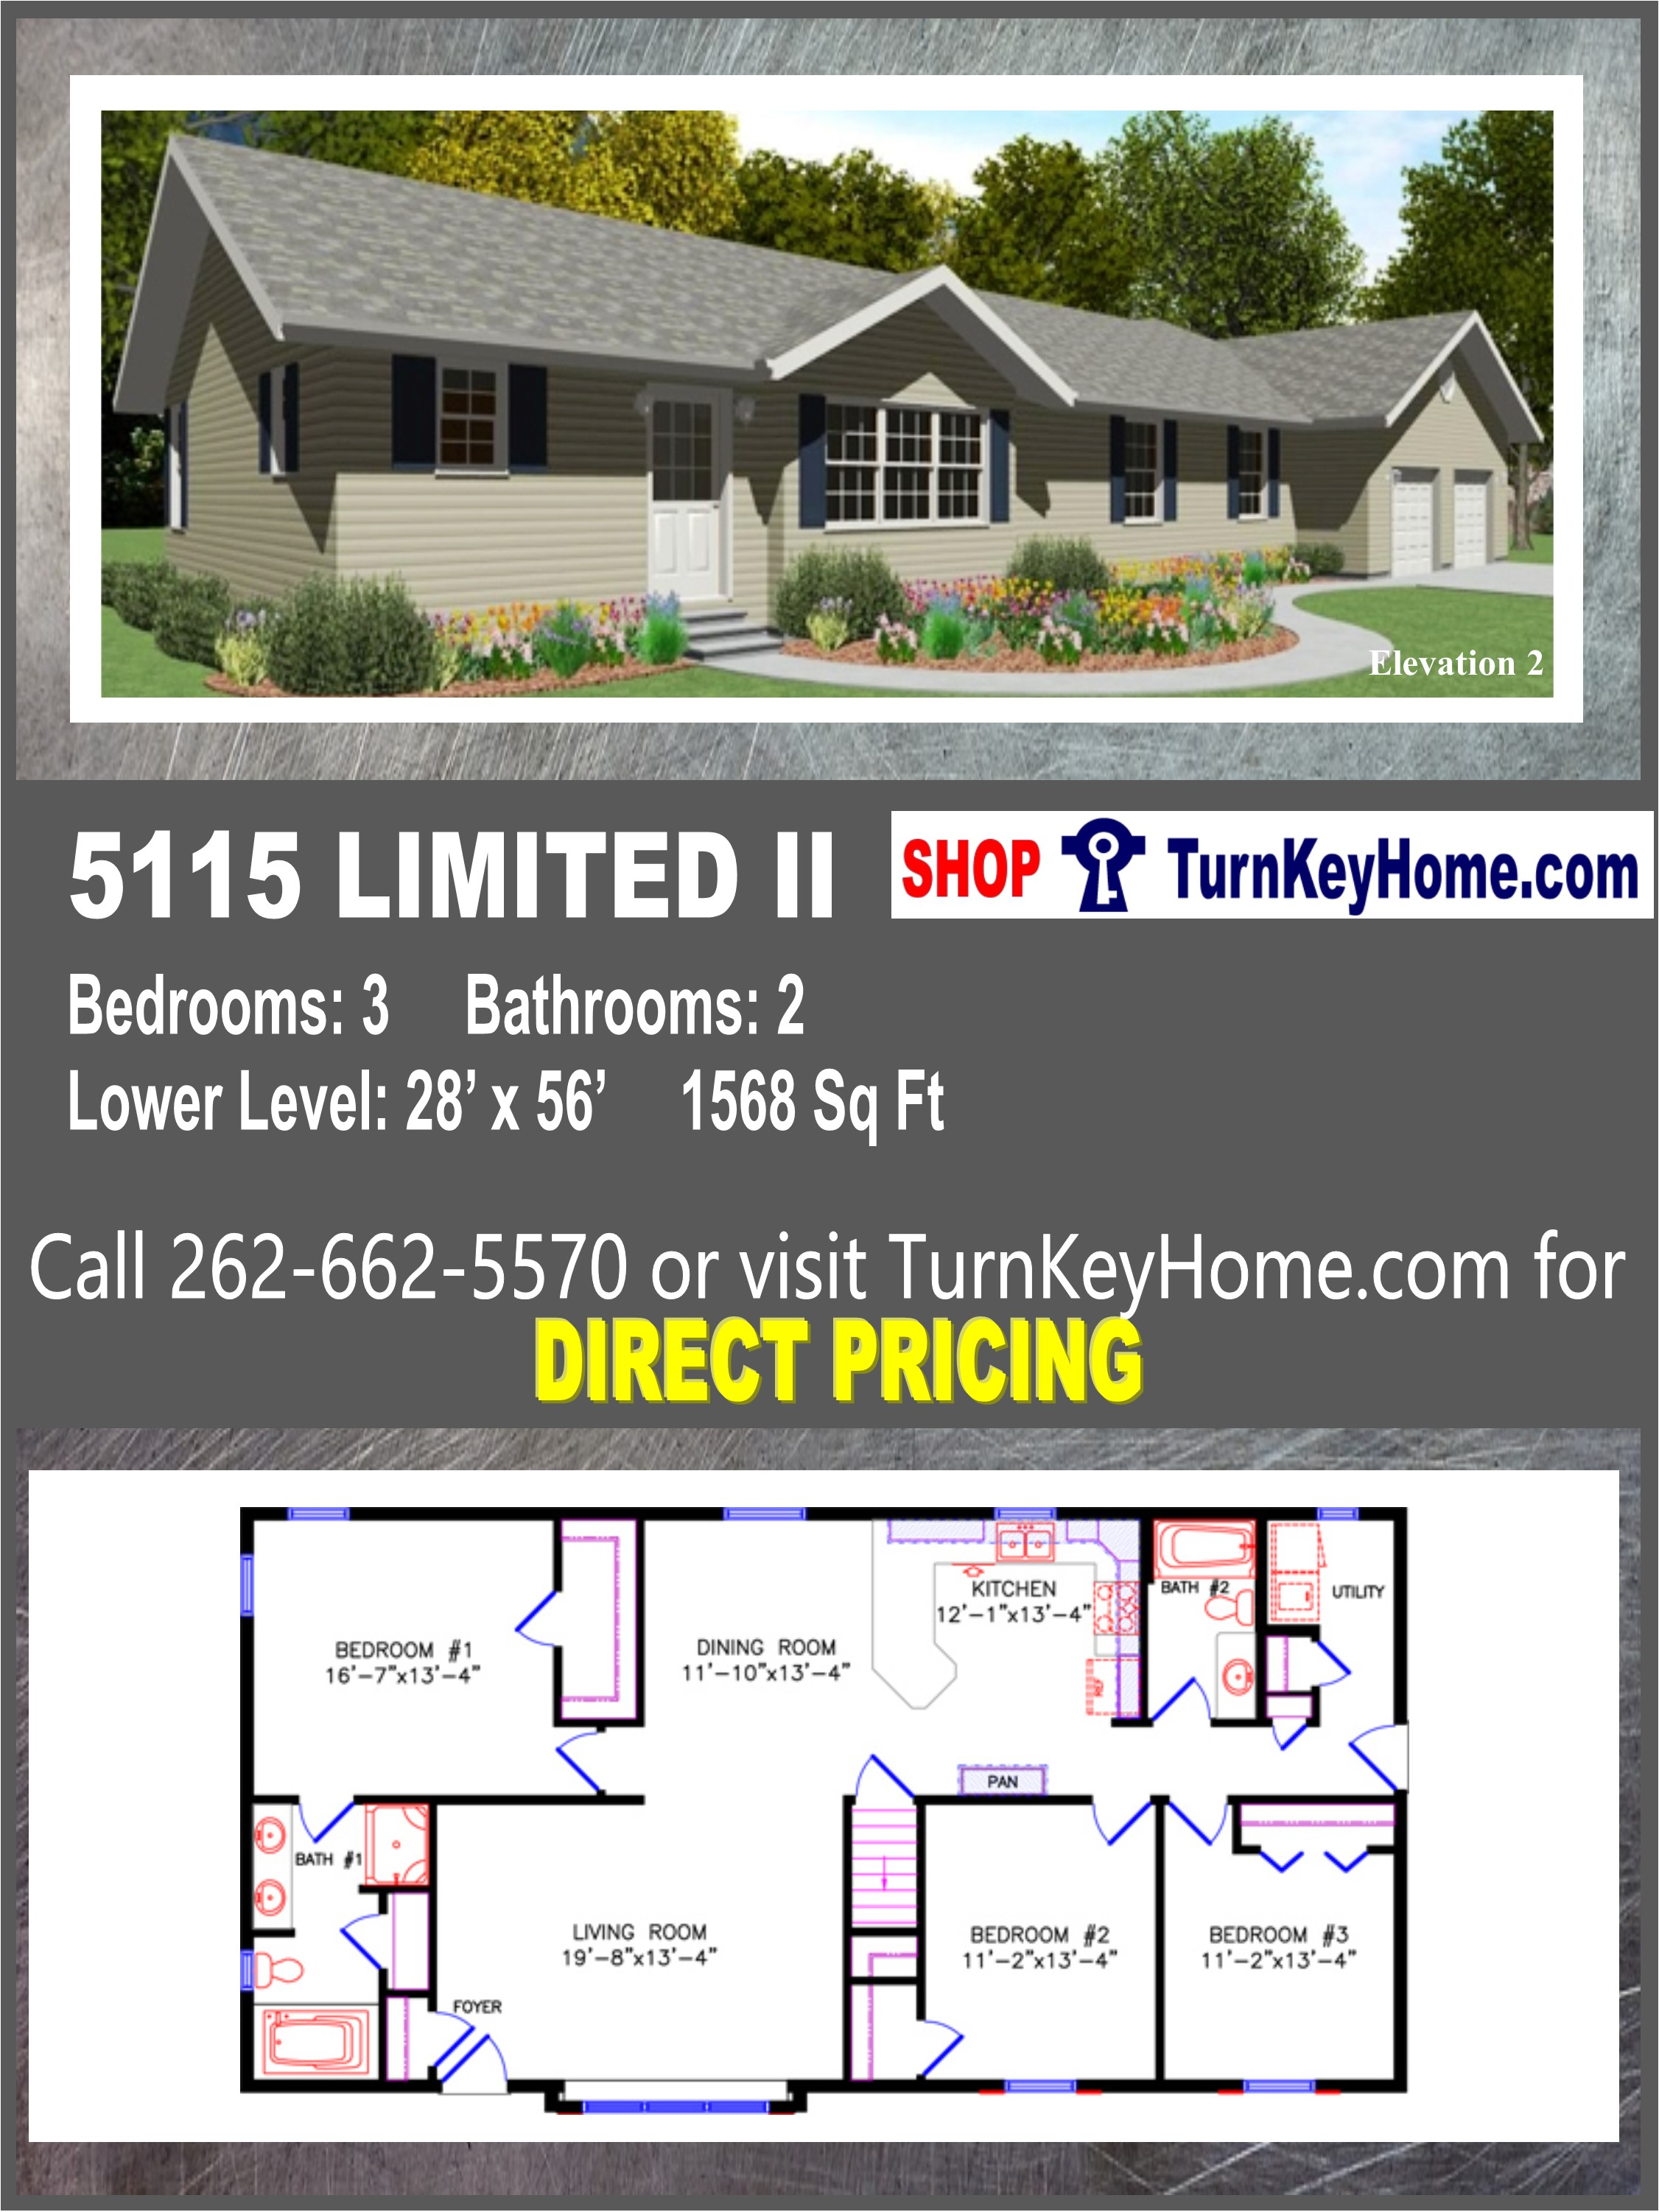 5115 LIMITED II E2 Ranch Home 3 Bed 2 Bath Plan 1568 SF ... on ranch log homes, townhouse plans, 3 car garage plans, summer cottage plans, log cabin plans, ranch luxury homes, strip mall plans, ranch modular homes, ranch art, ranch style homes, ranch backyard, floor plans,